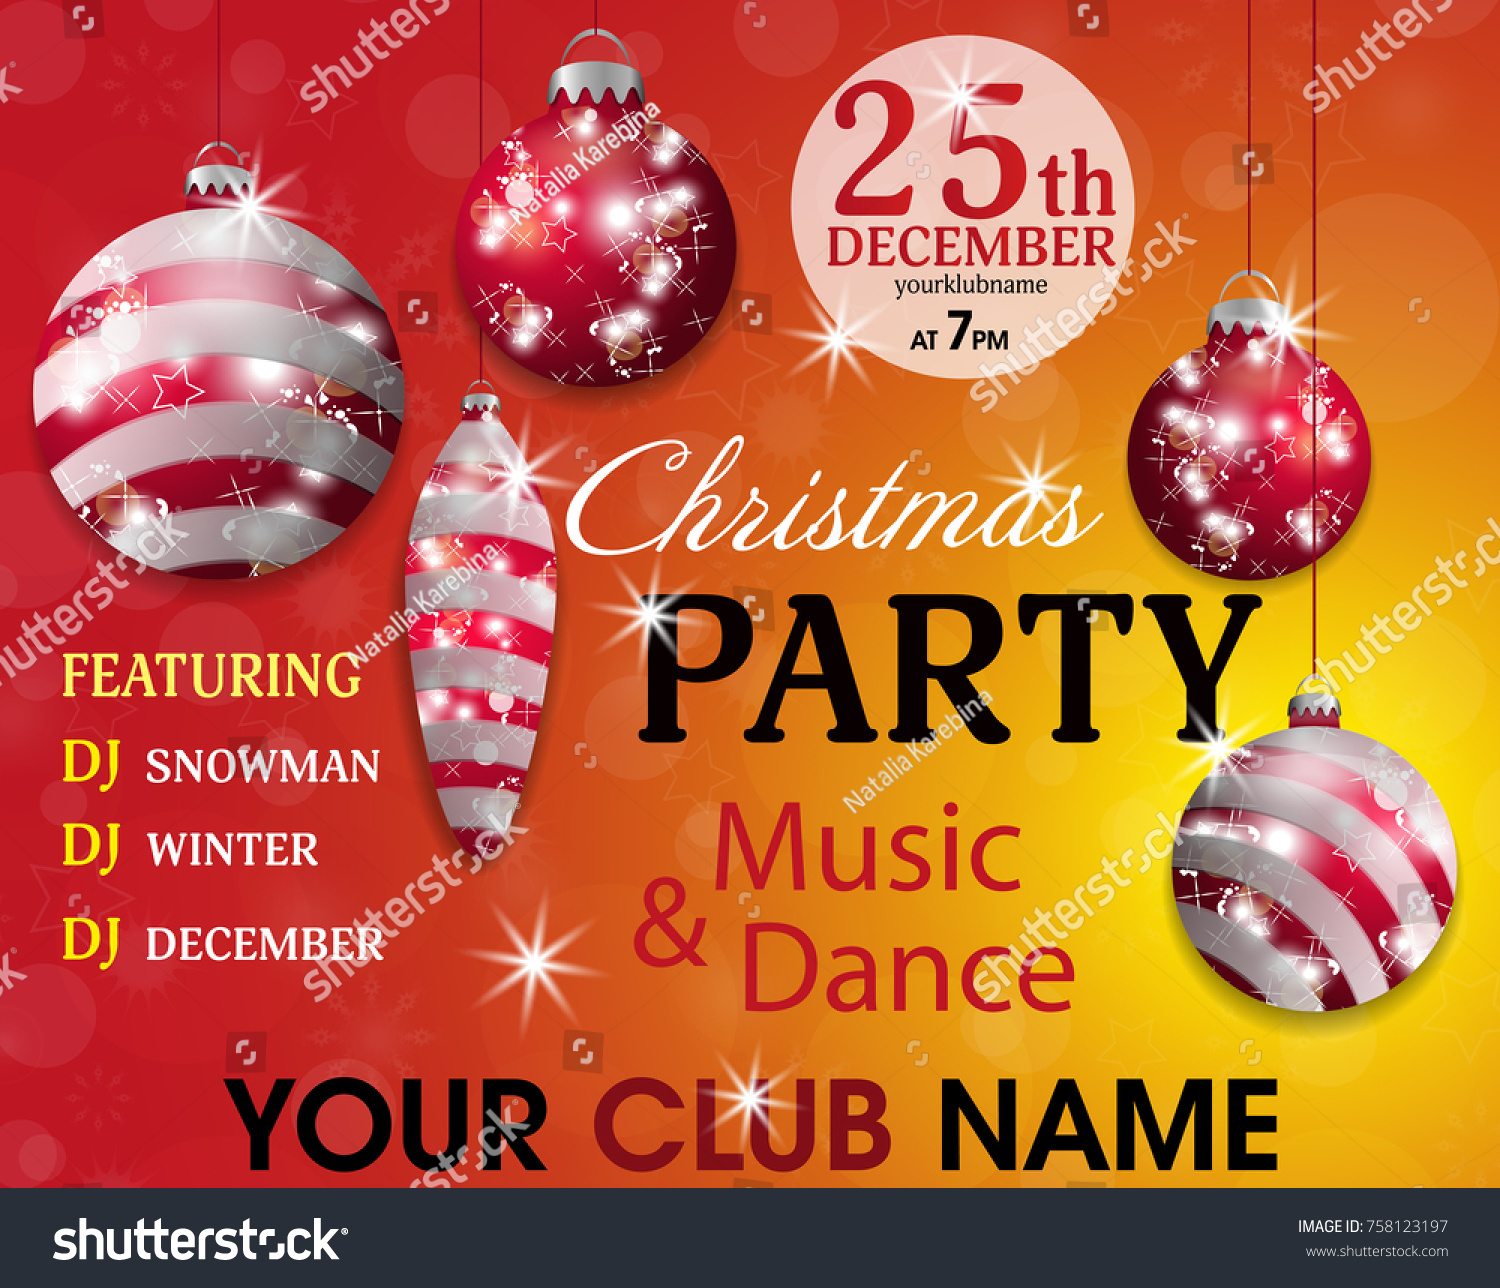 Christmas Party Invitation Template Red Yellow Stock Vector ...